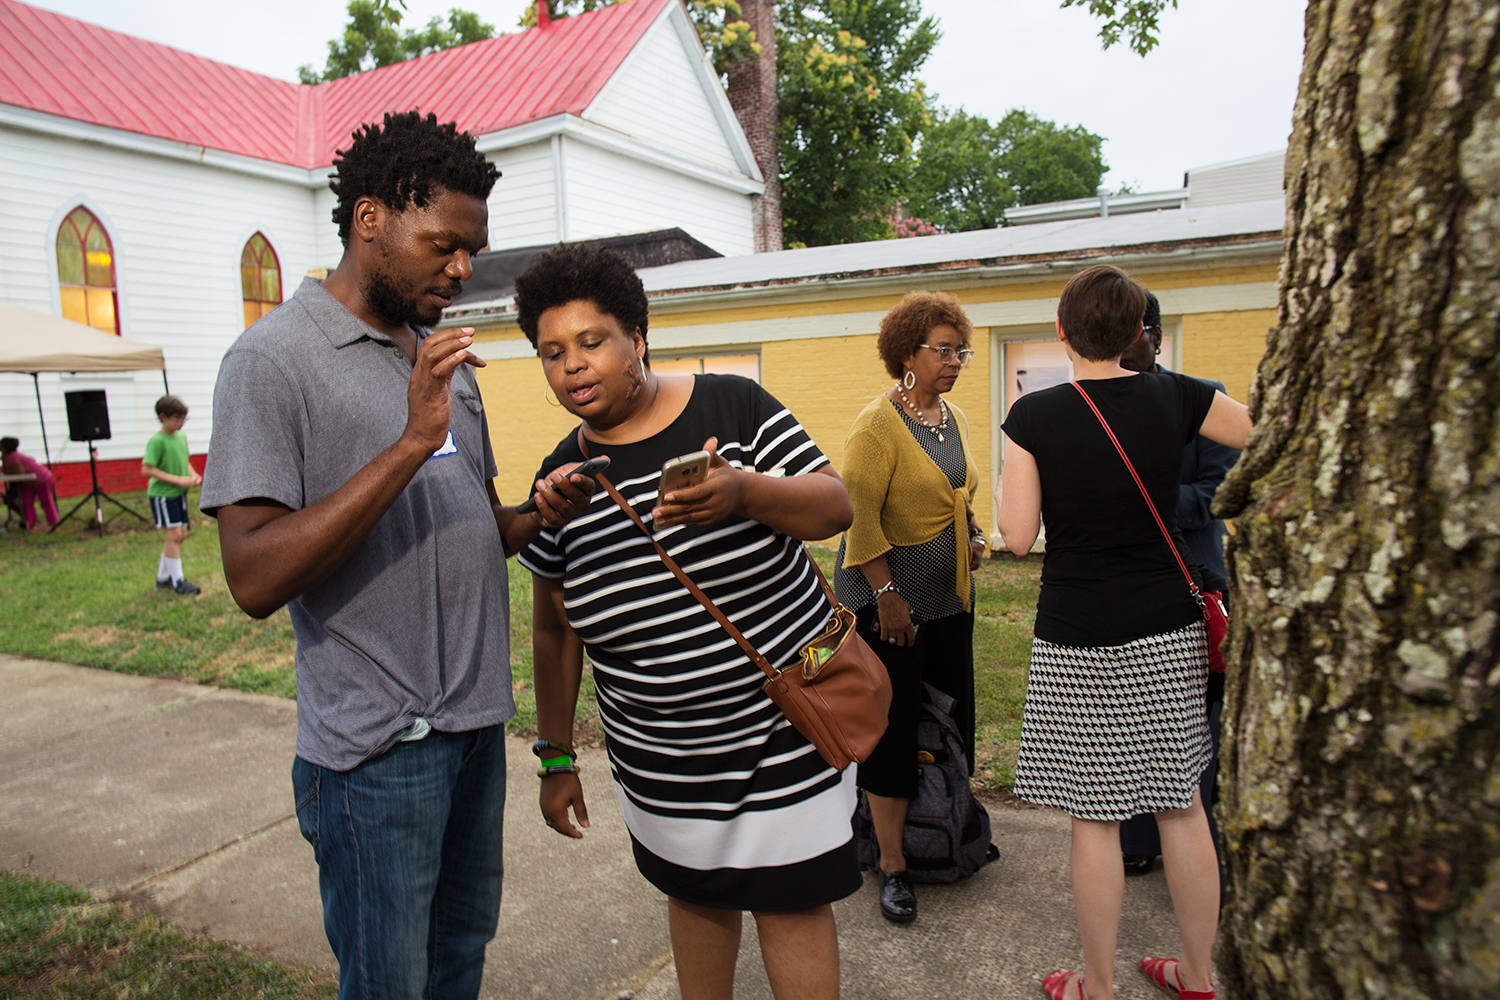 Web_export_20170727_Oakwood_Arts_Block_Party_Richmond_VA_5D1_0265.jpg